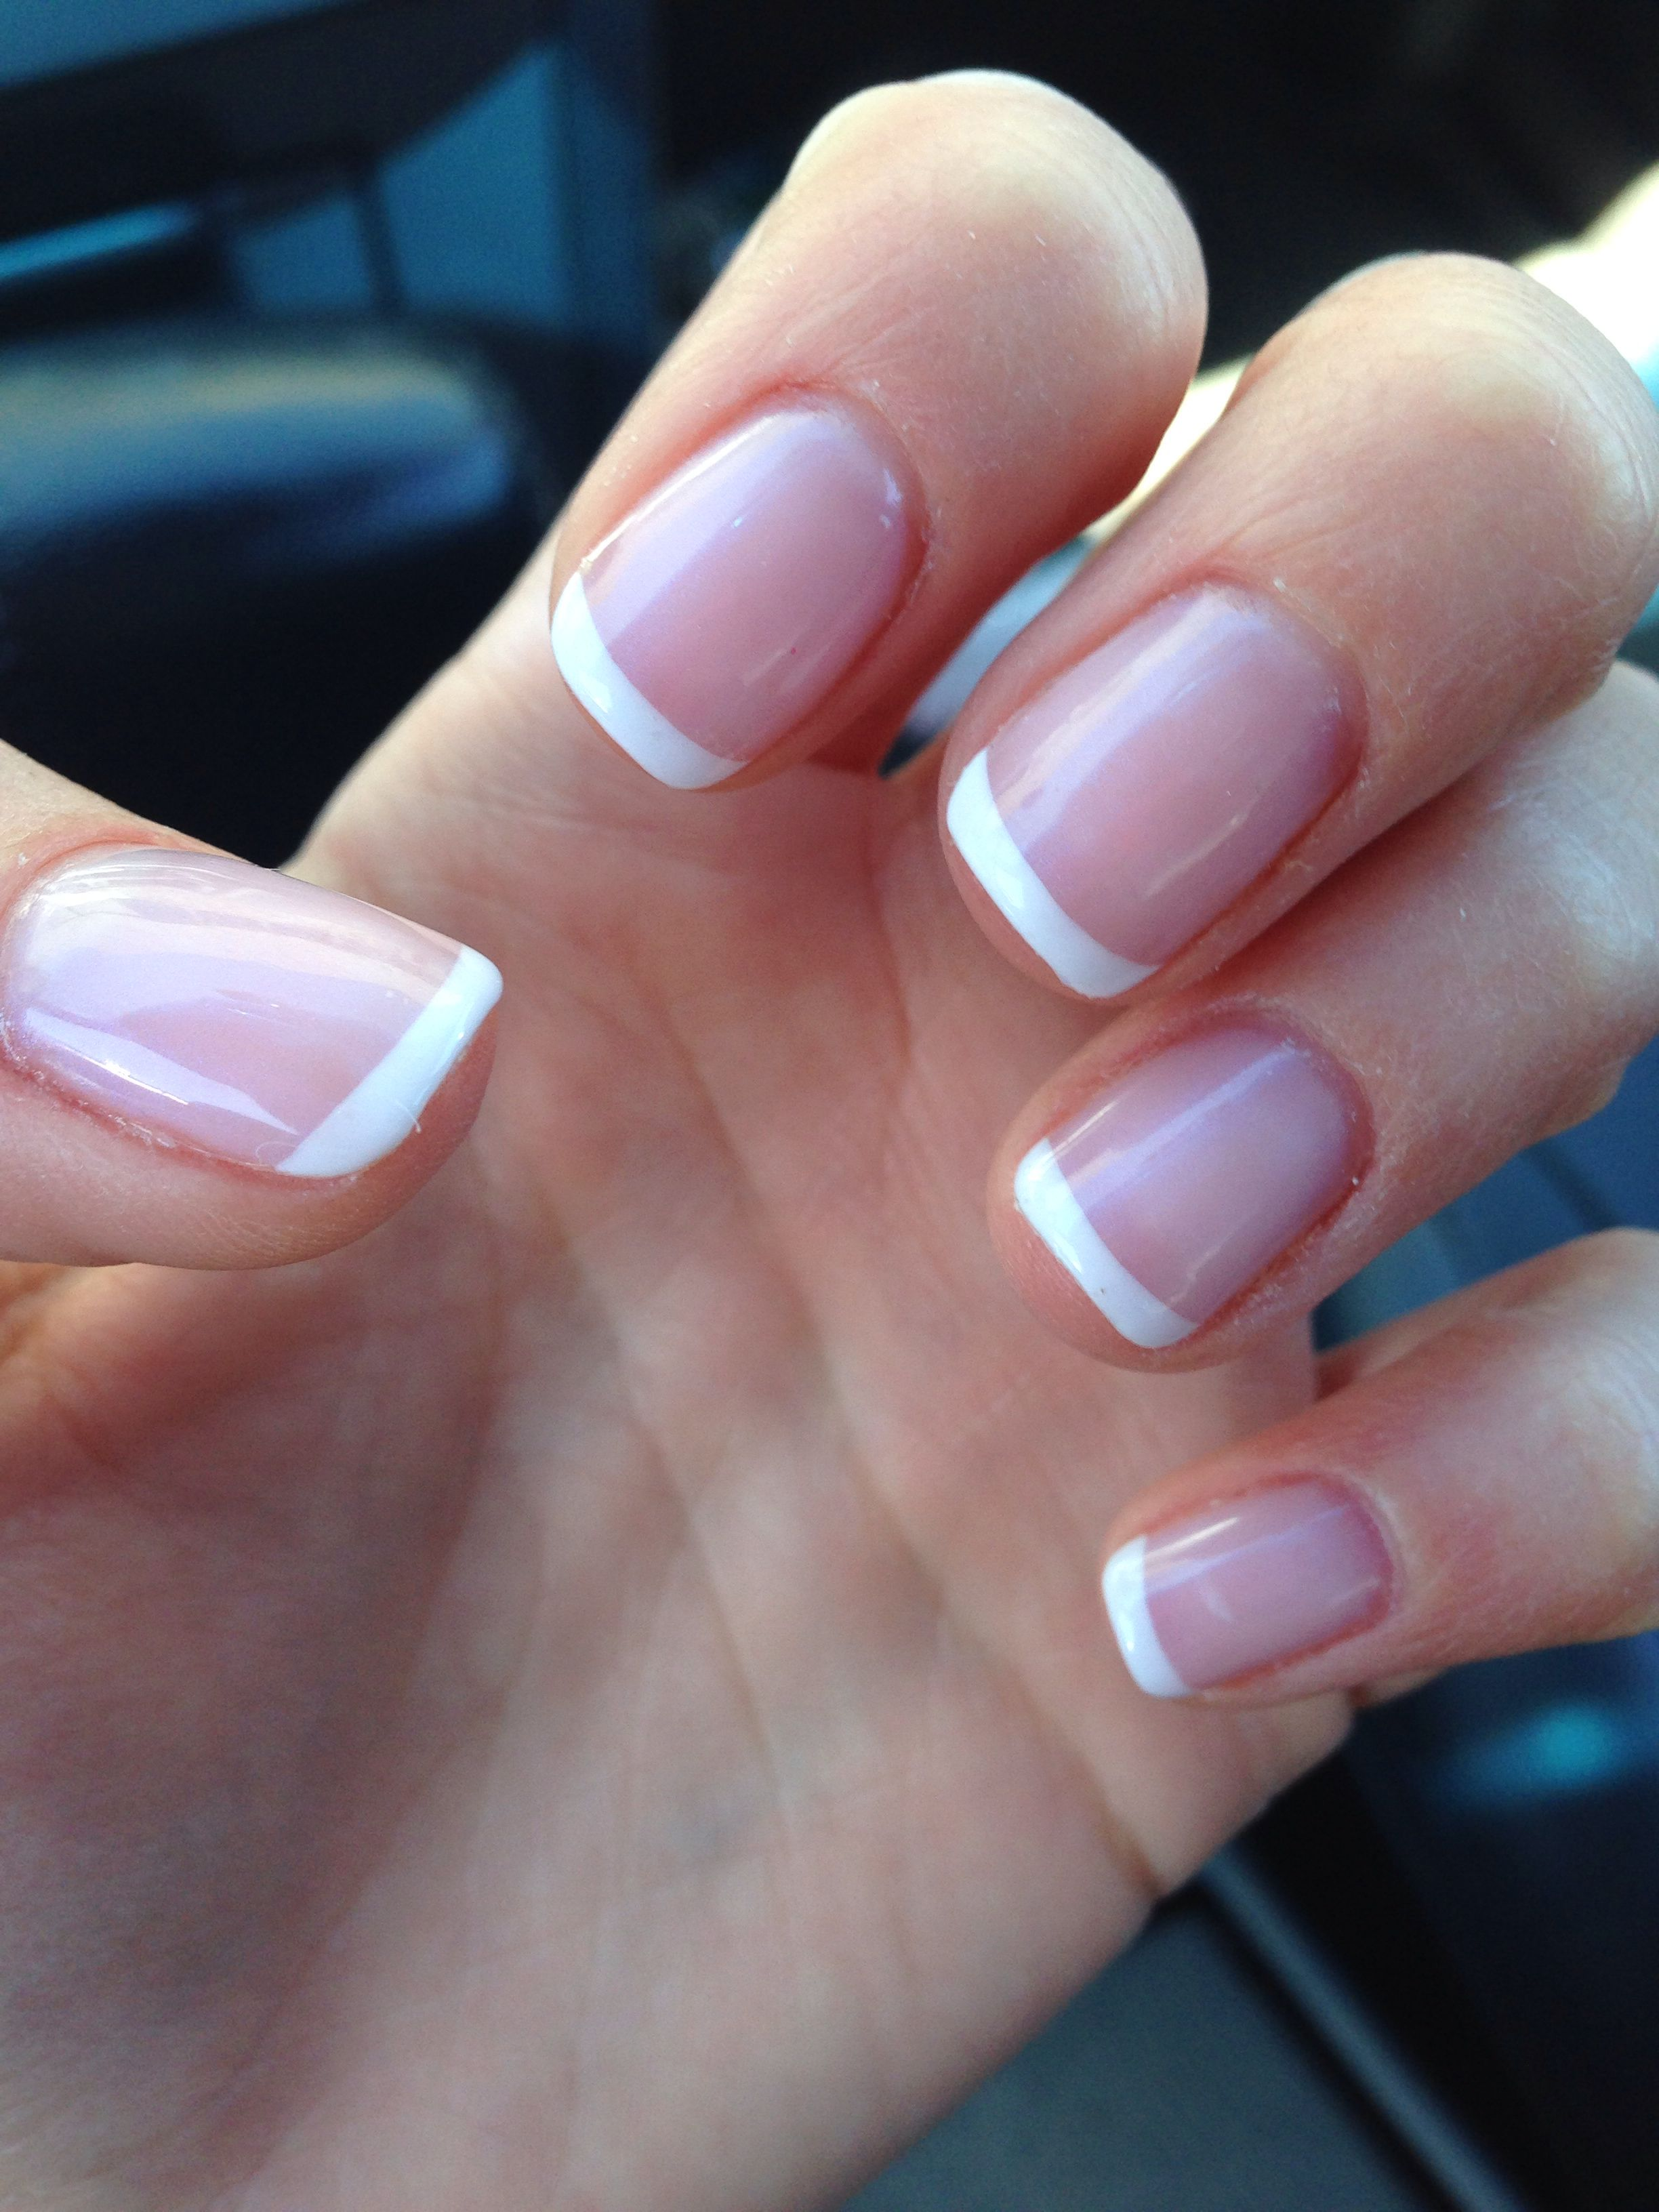 There is an idea of manicure for short nails